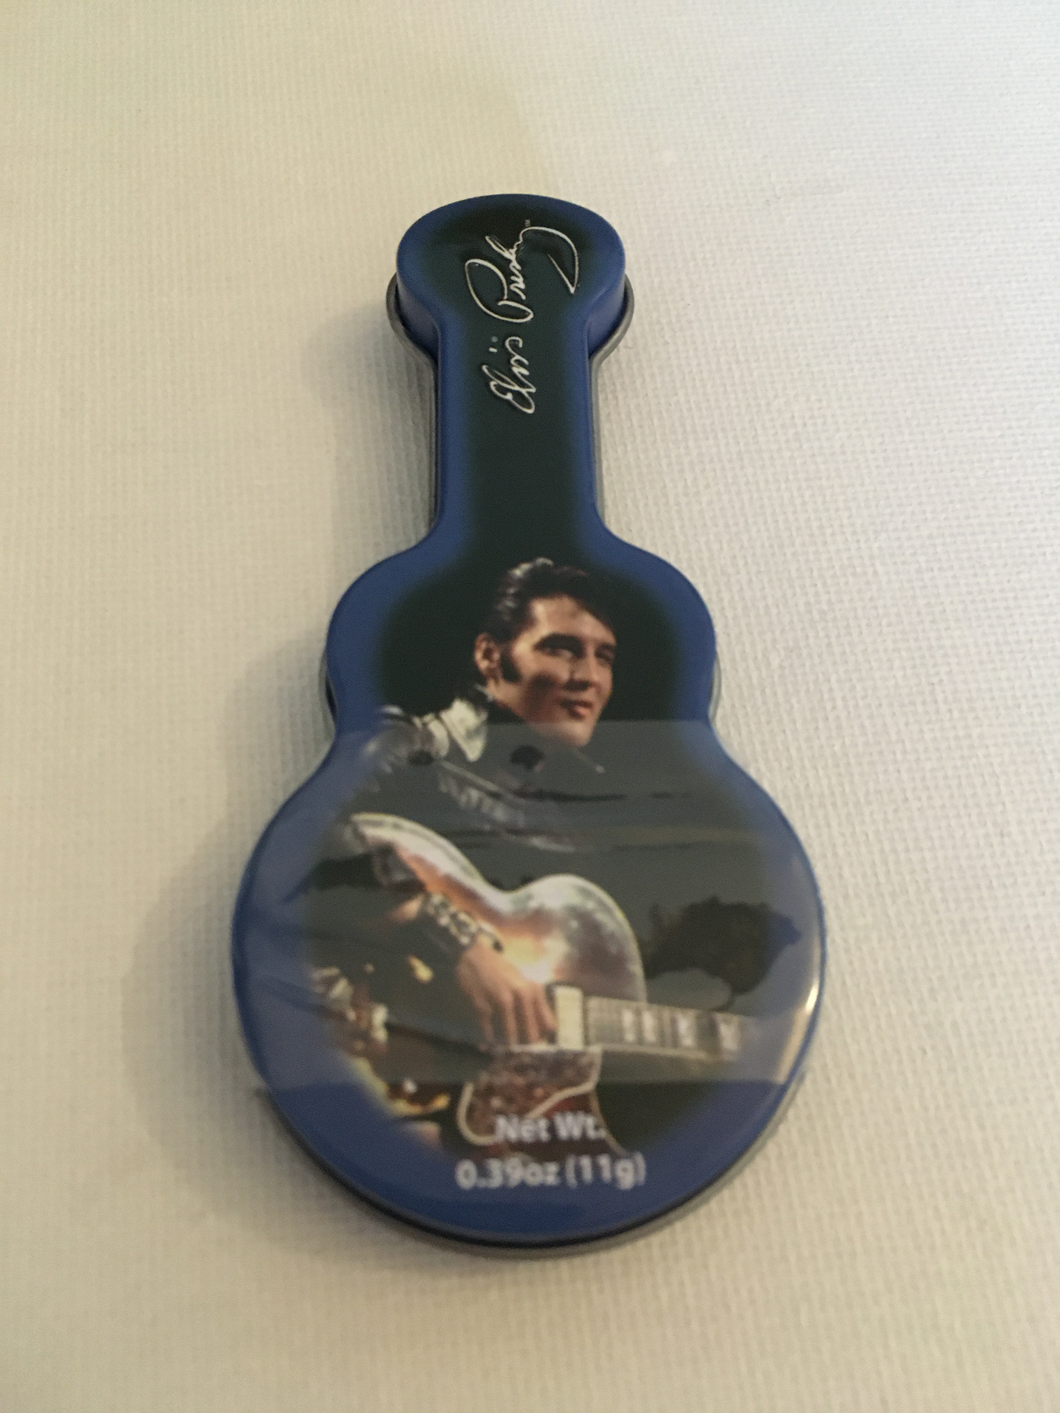 Elvis Presley Mints in Guitar Tin - The Celebrity Gift Company